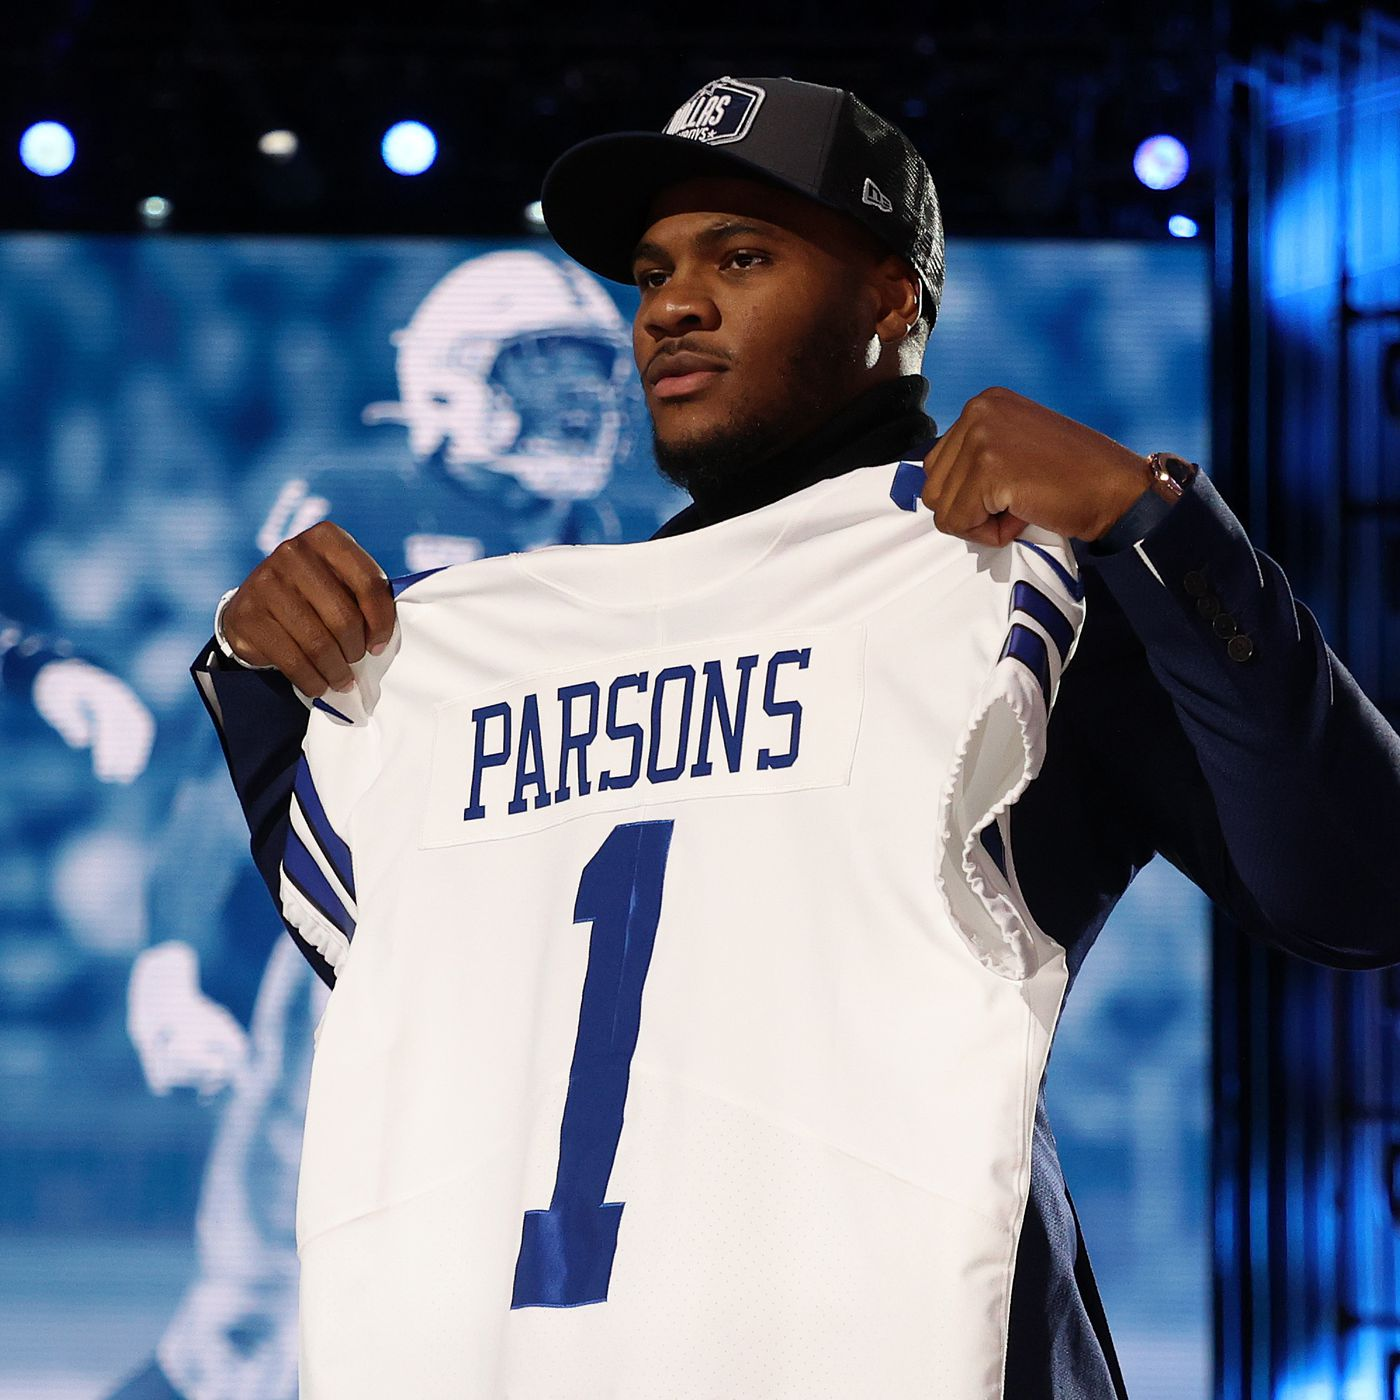 The 2021 Dallas Cowboys Draft Class officially has their jersey ...